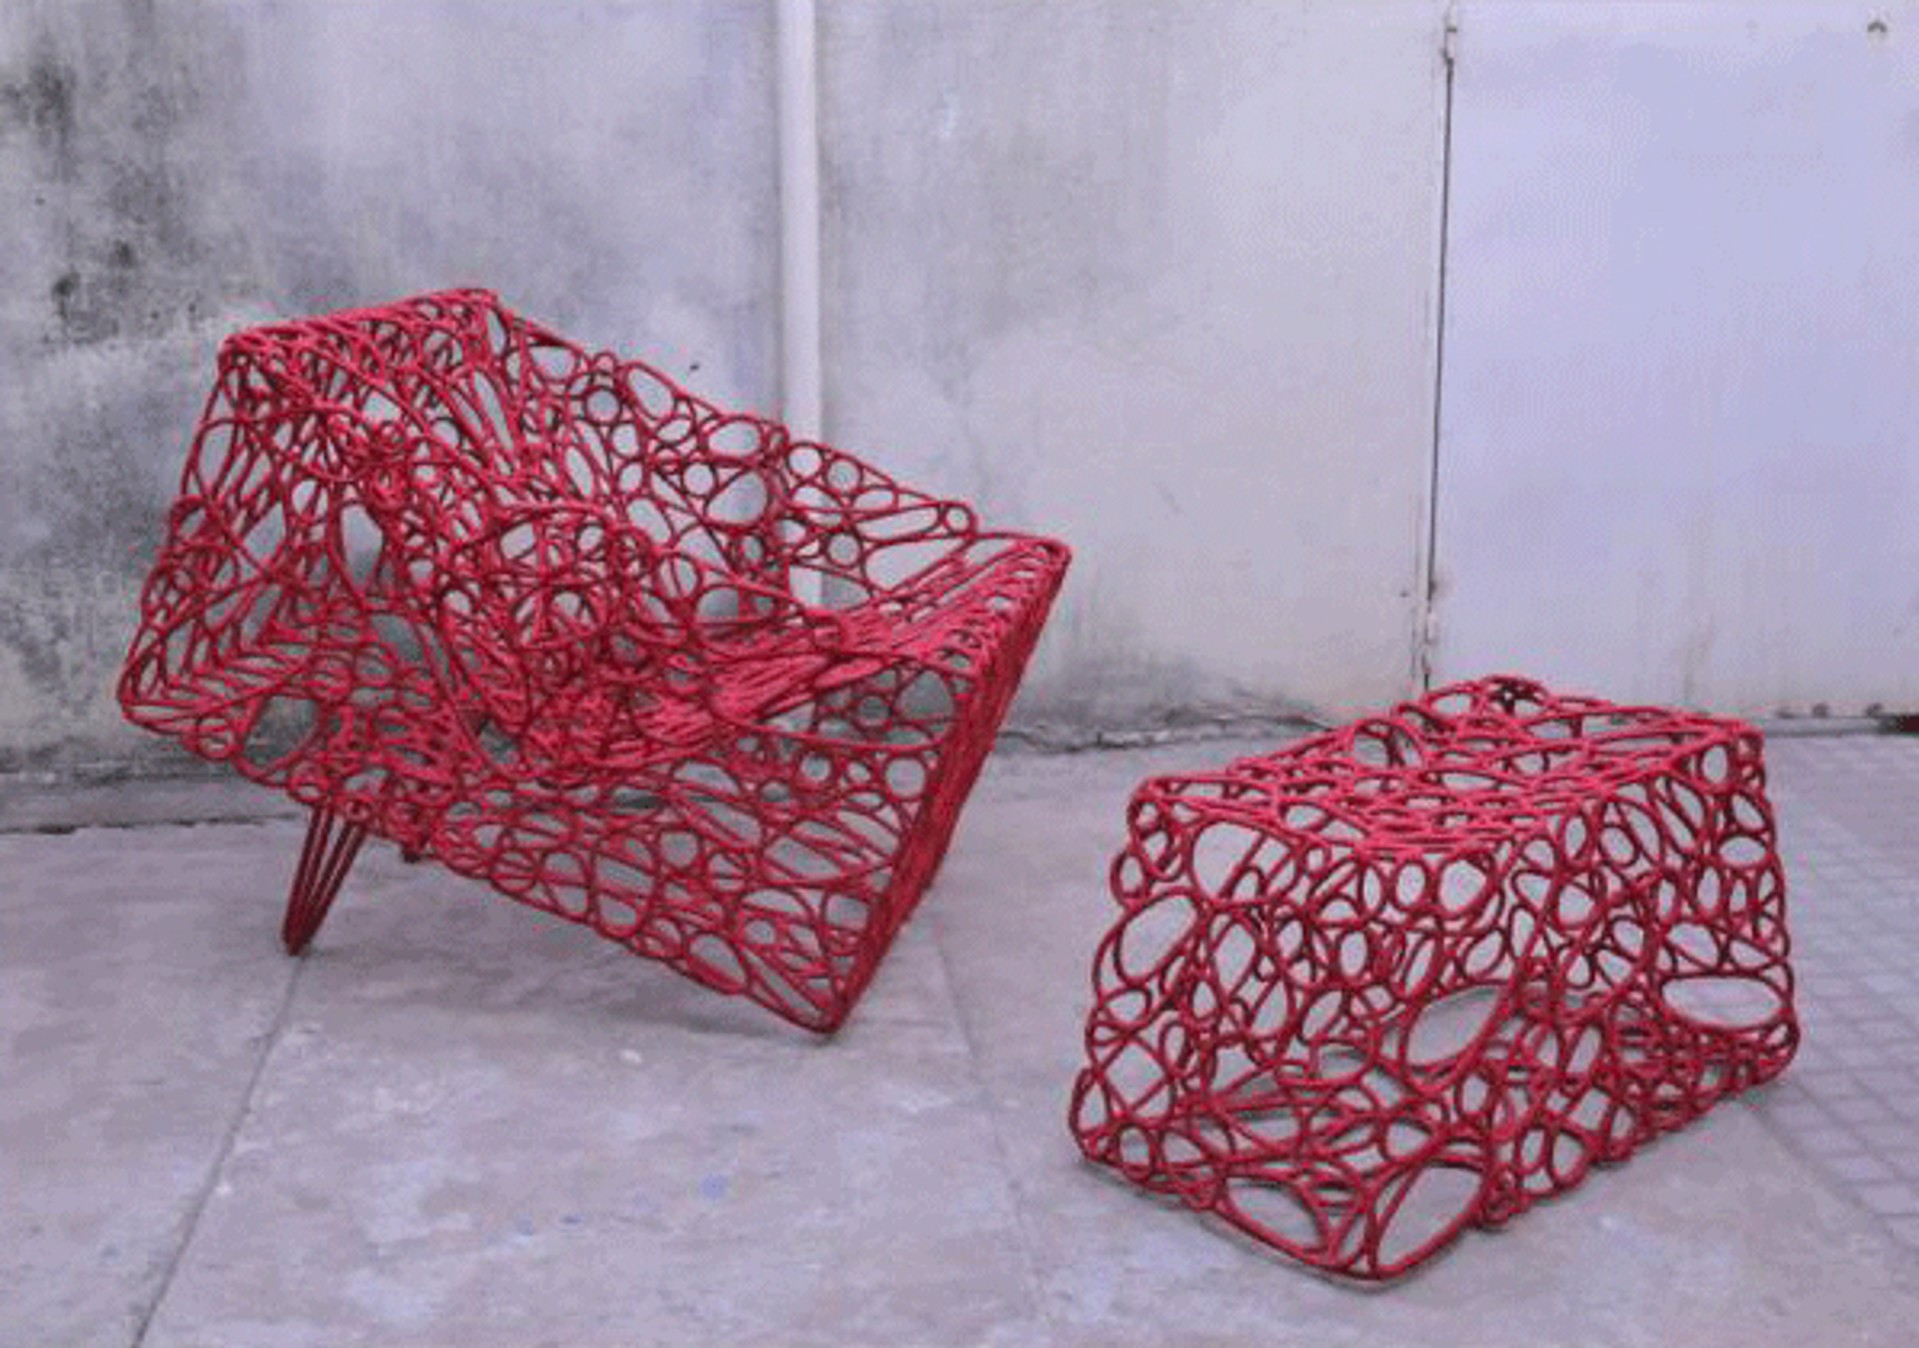 Hand woven armchair by Cheick Diallo